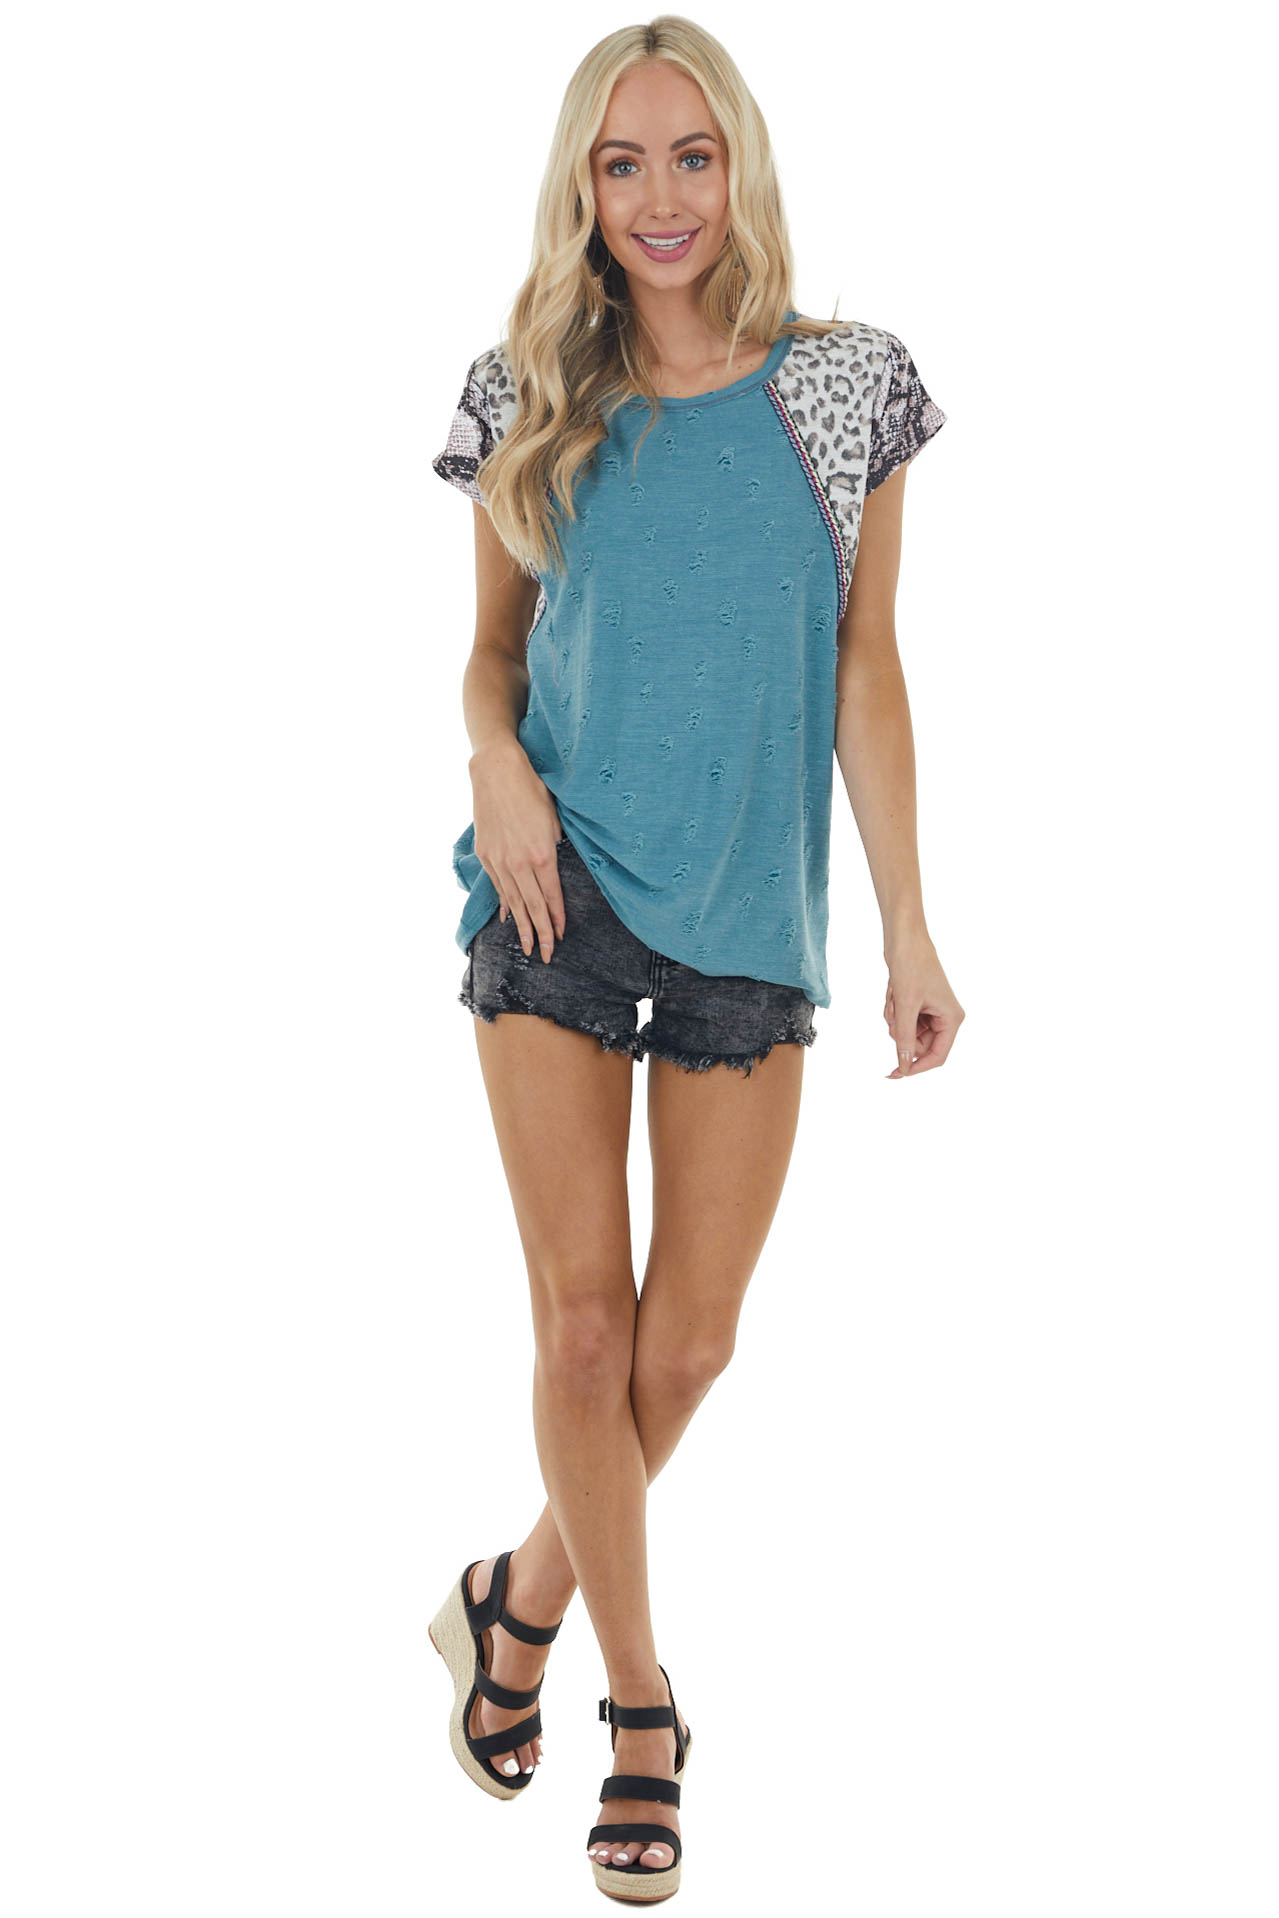 Teal Distressed Top with Multiprint Sleeves and Embroidery